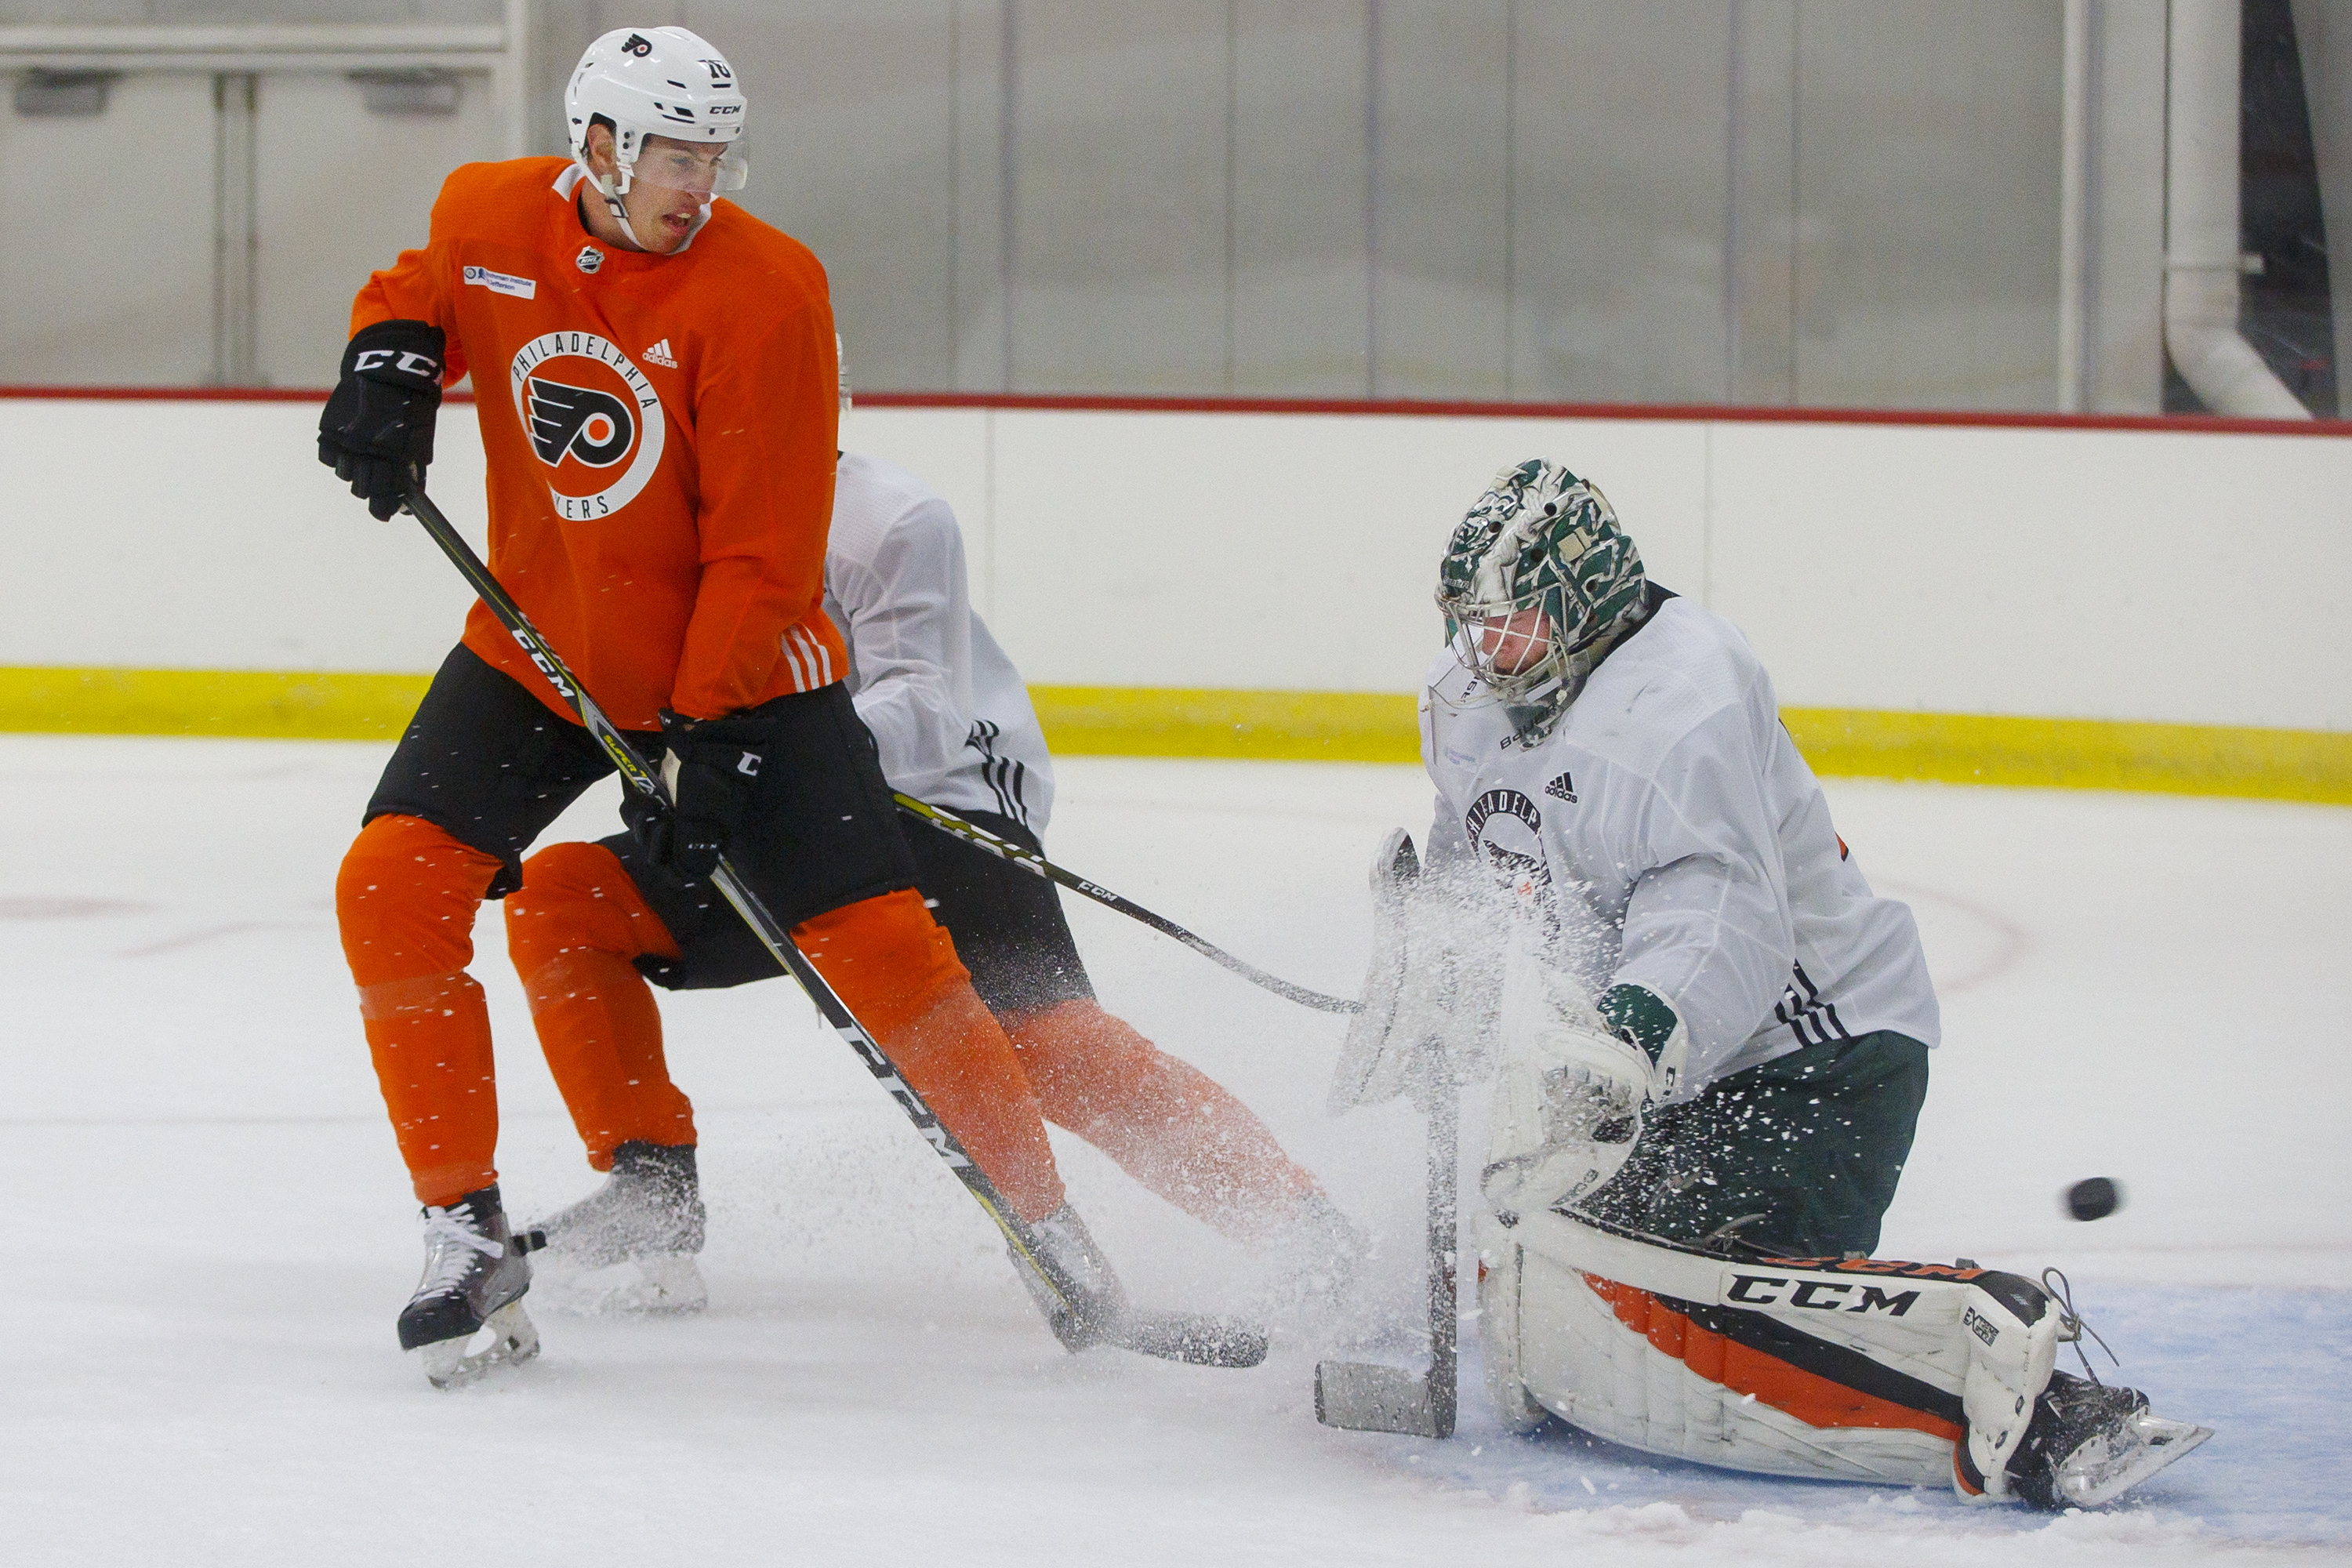 Flyers Isaac Ratcliff. left, gets the pick past goalie Carter Hart, right, during a 3 on 3 game at the Flyers Skate Zone in Voorhees NJ on July 2, 2018.